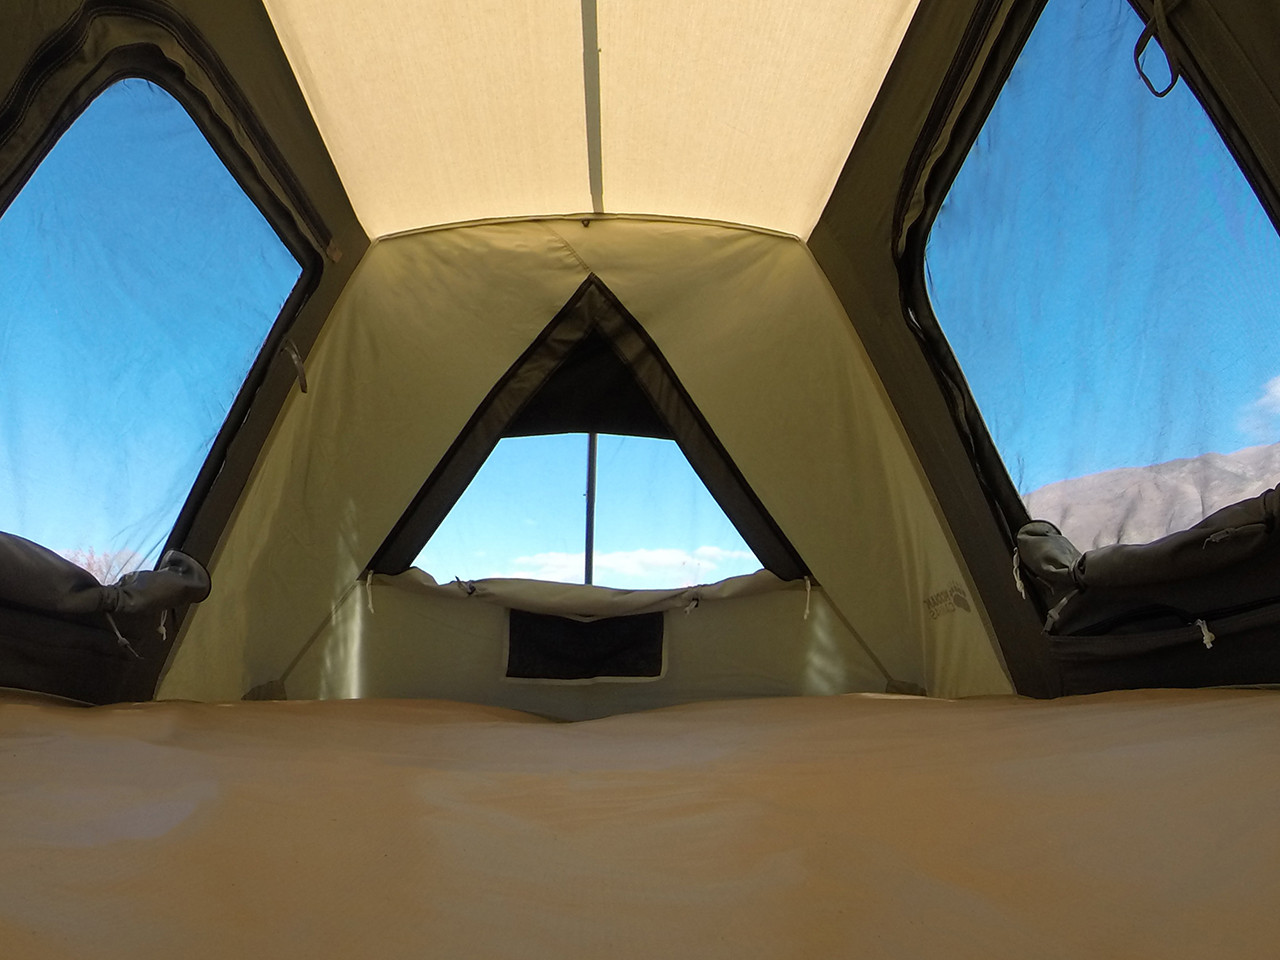 Wide angle view from inside with windows zipped open.